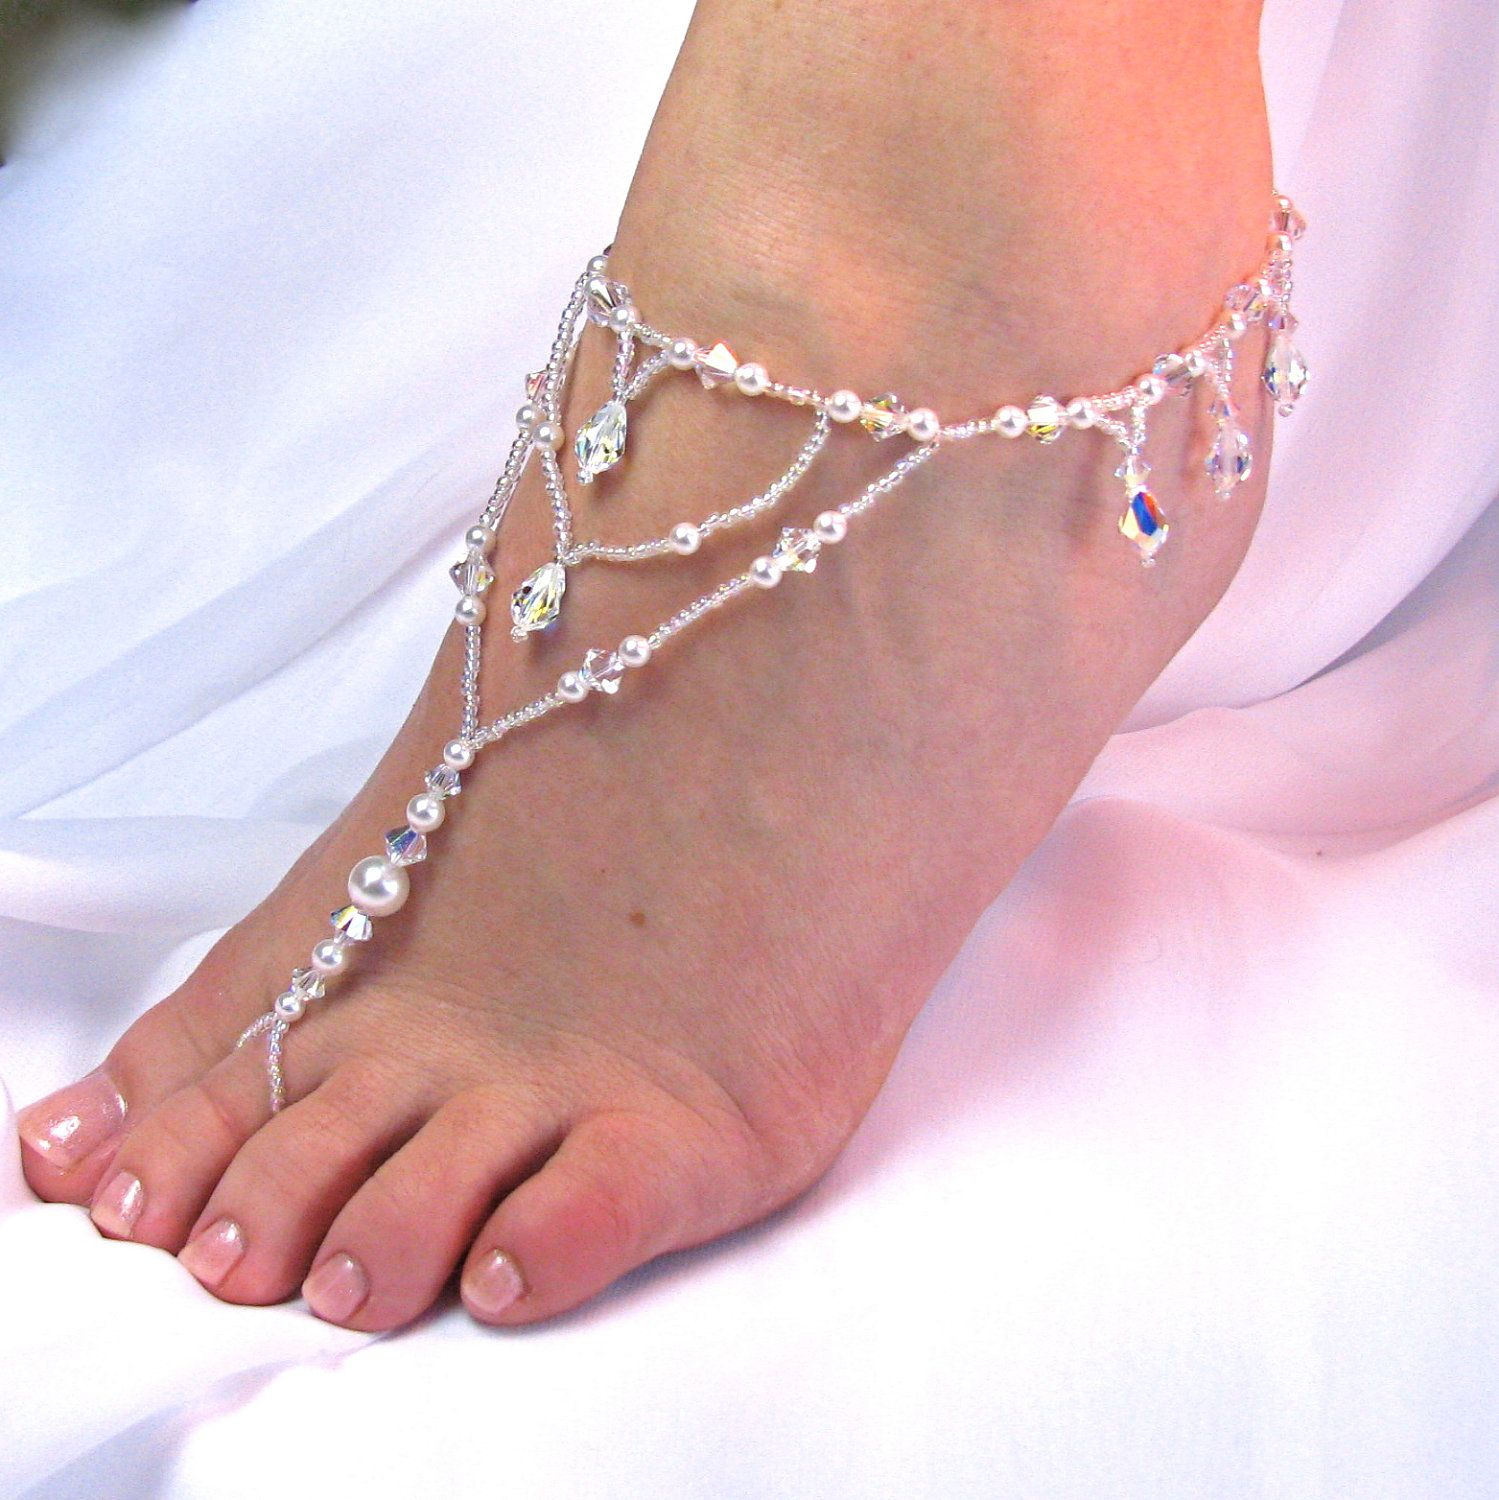 wedding sandals for bride Wedding Foot Jewelry Barefoot Sandal Bridal Beach Sandal Destination Wedding Beaded Sandal Beach Jewelry Bridal Accessory Design 1 fringe